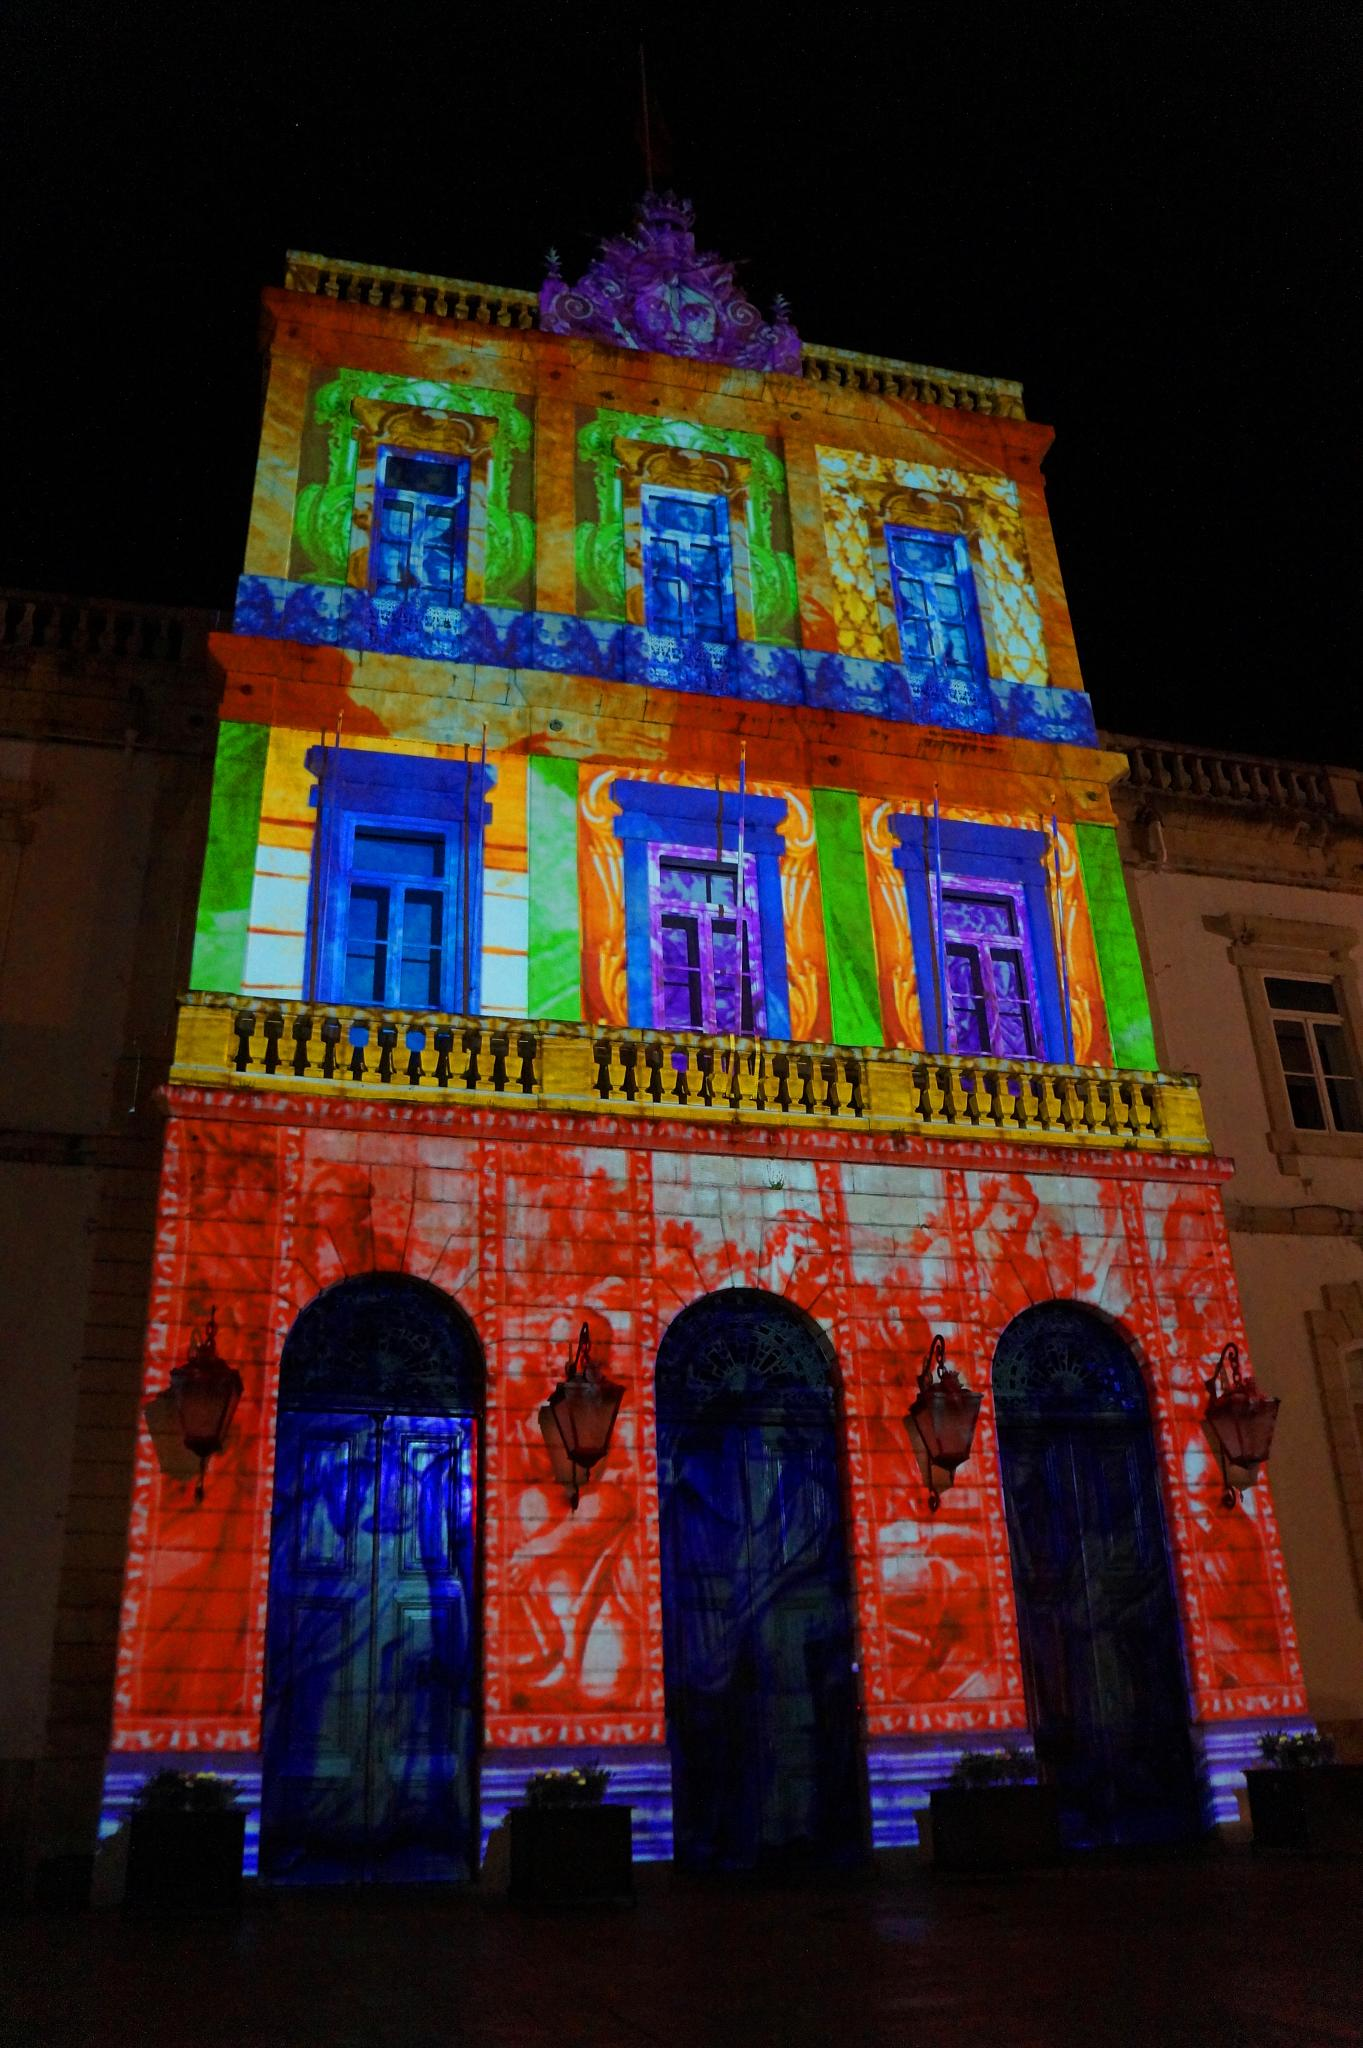 The collor of lights by Miguel Angelo